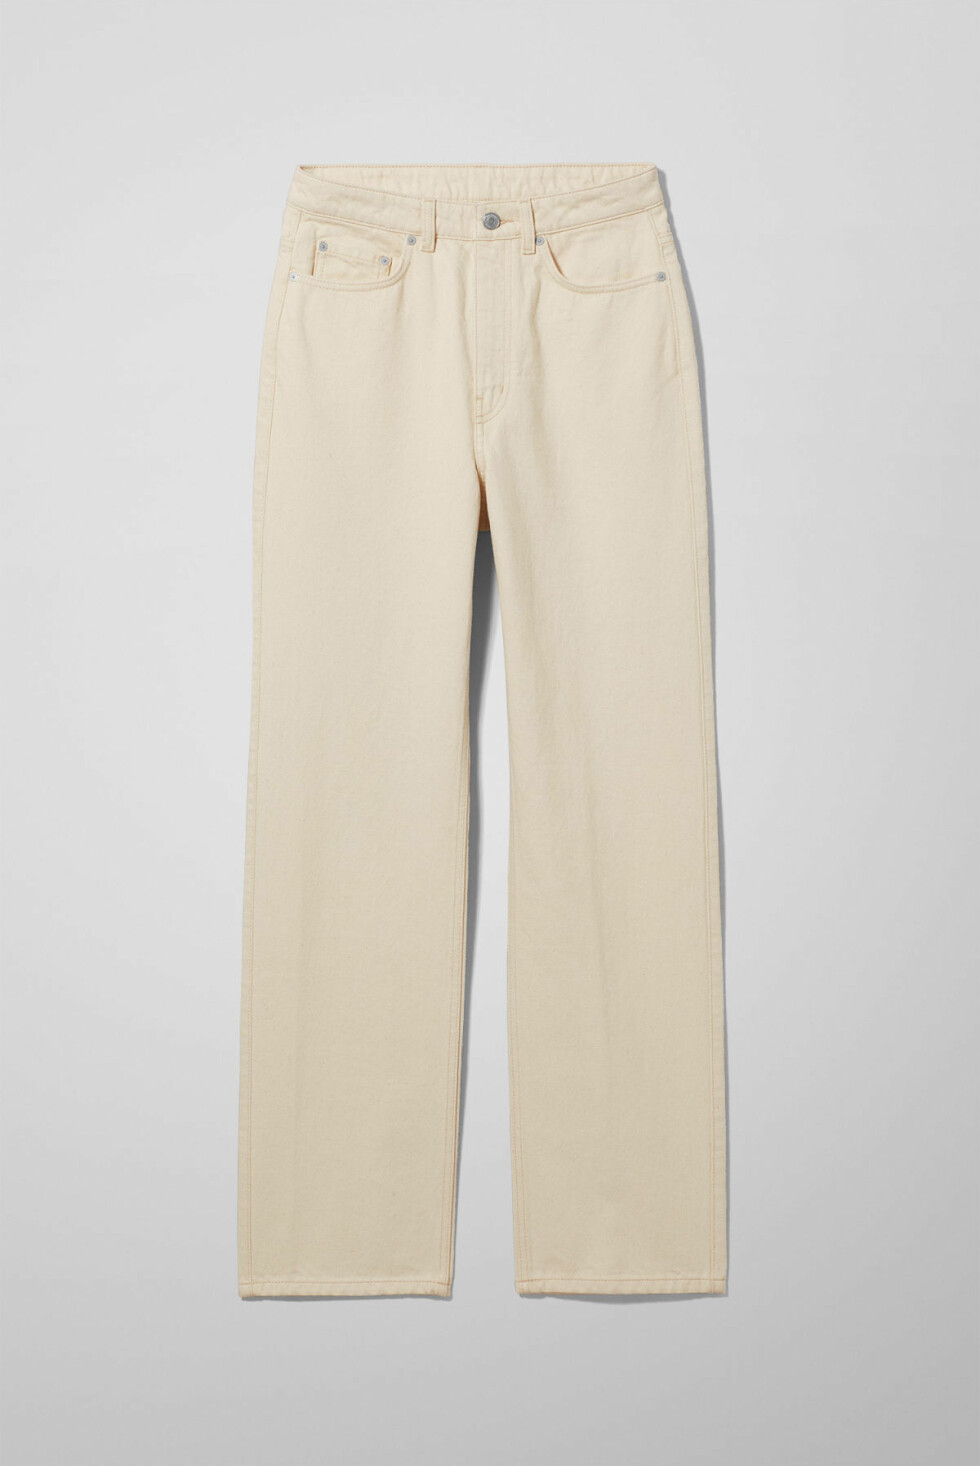 Bukse fra Weekday |500,-| https://www.weekday.com/en_sek/women/categories/new-arrivals/product.row-ecru-jeans-beige.0697777001.html